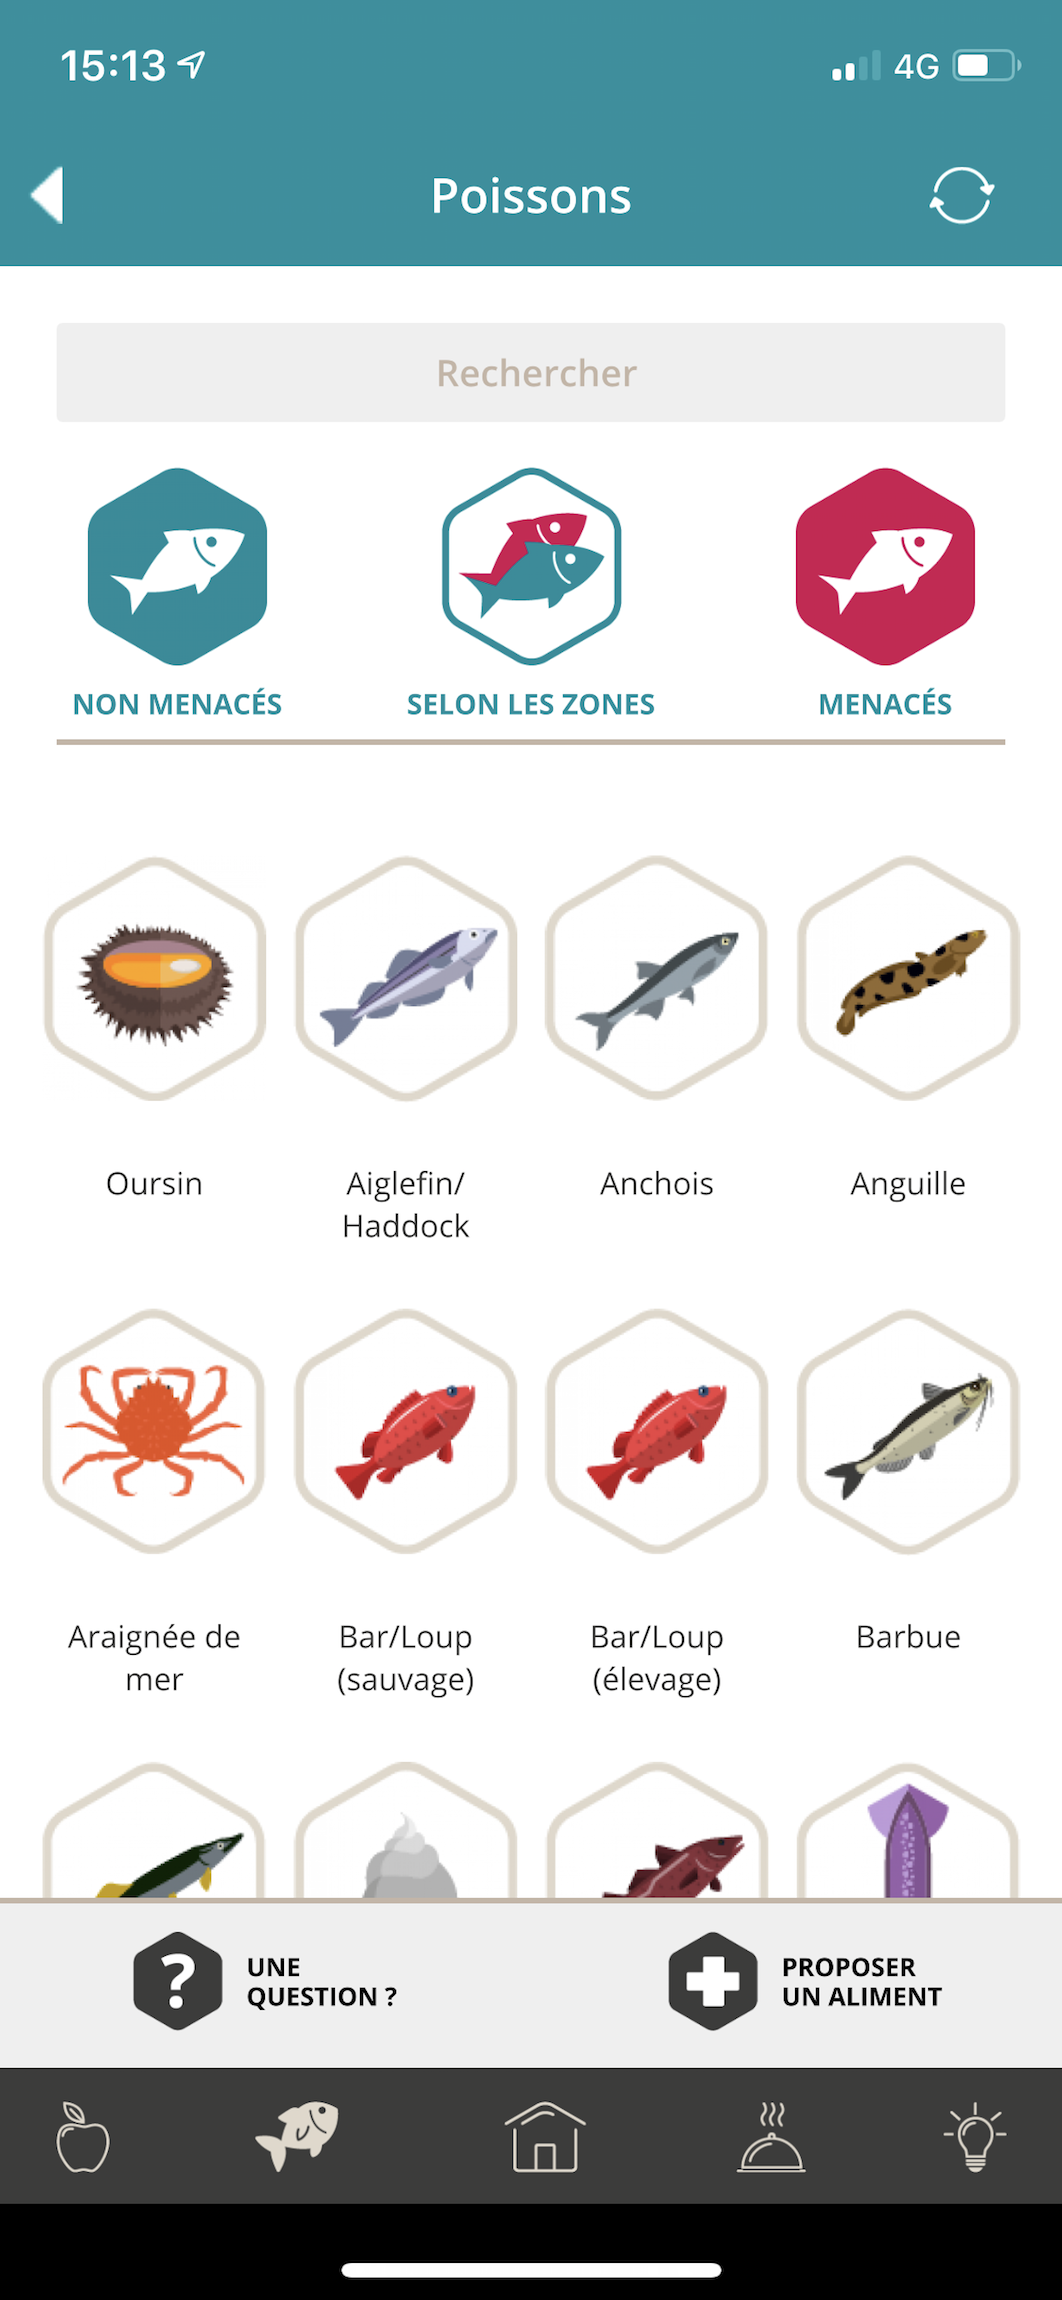 Classification des poissons menacés dans l'application Etiquettable